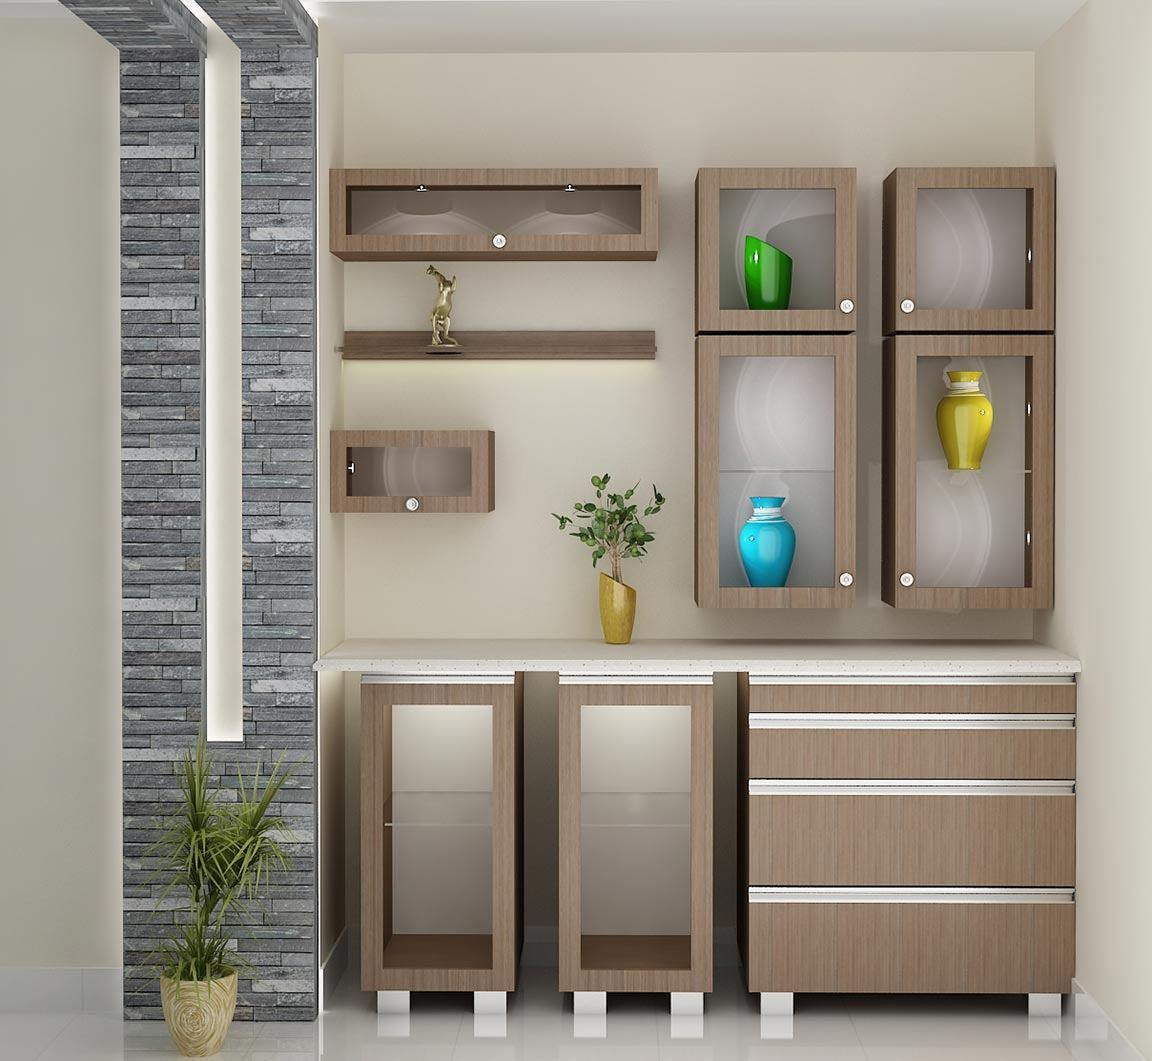 cutlery cupboard stone wall interiors